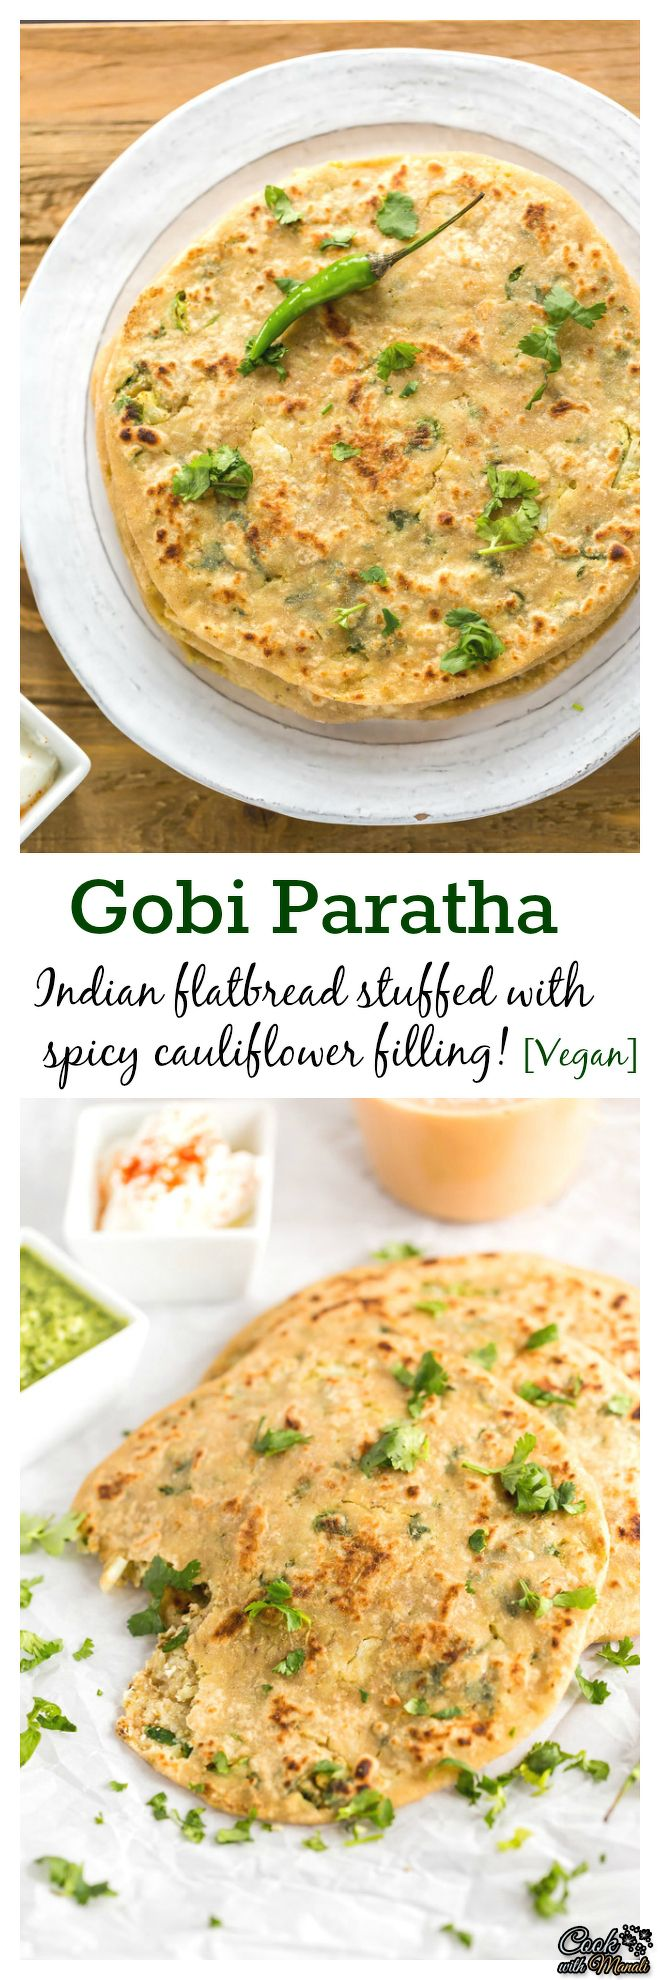 Gobi paratha is a popular flatbread stuffed with spicy cauliflower filling. It's enjoyed with yogurt, pickle and some chai on the side. Find the recipe on www.cookwithmanali.com